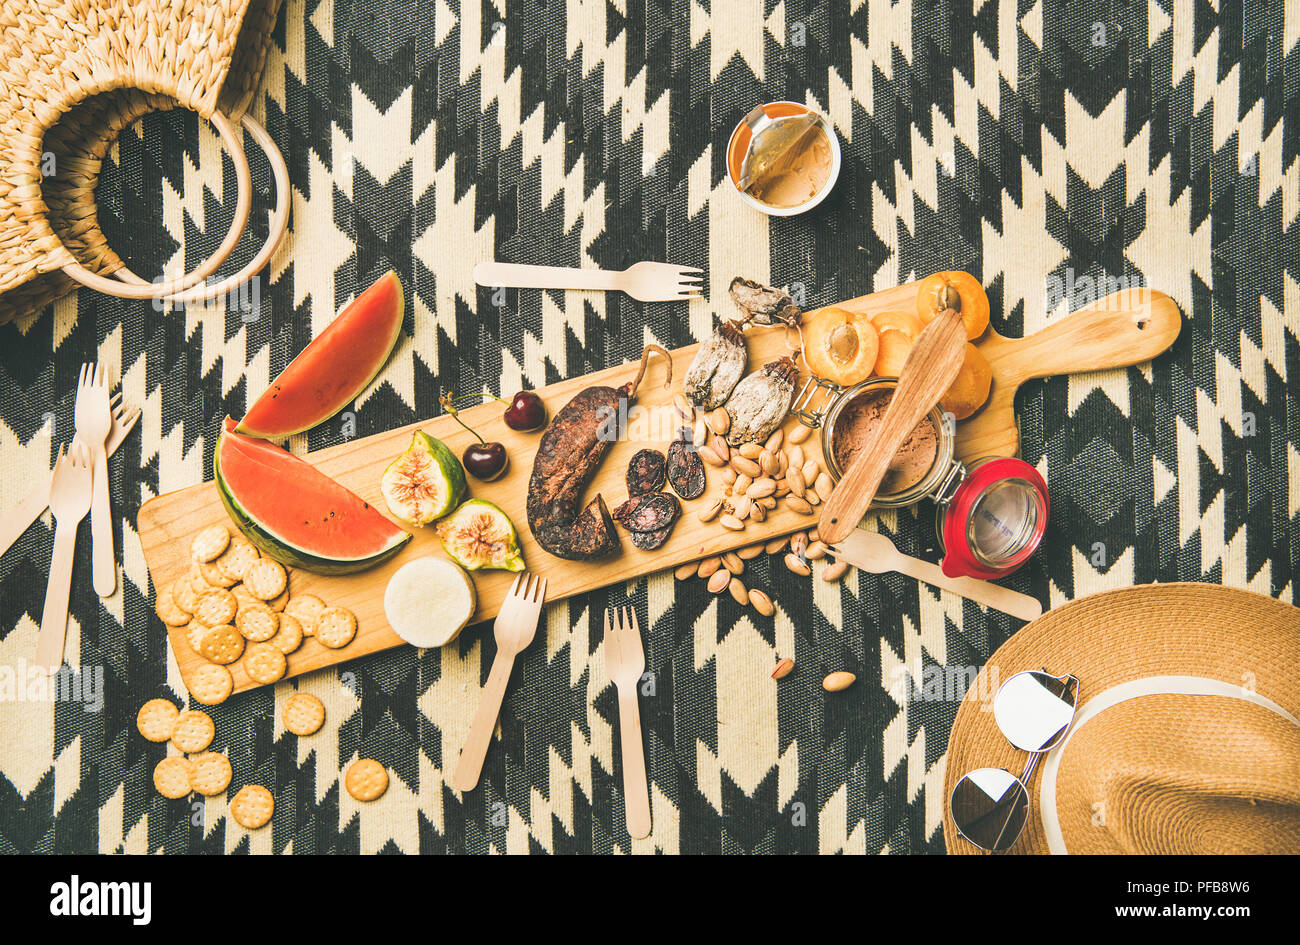 Picnic concept with sausage, fruit, nuts, cheese and pate - Stock Image